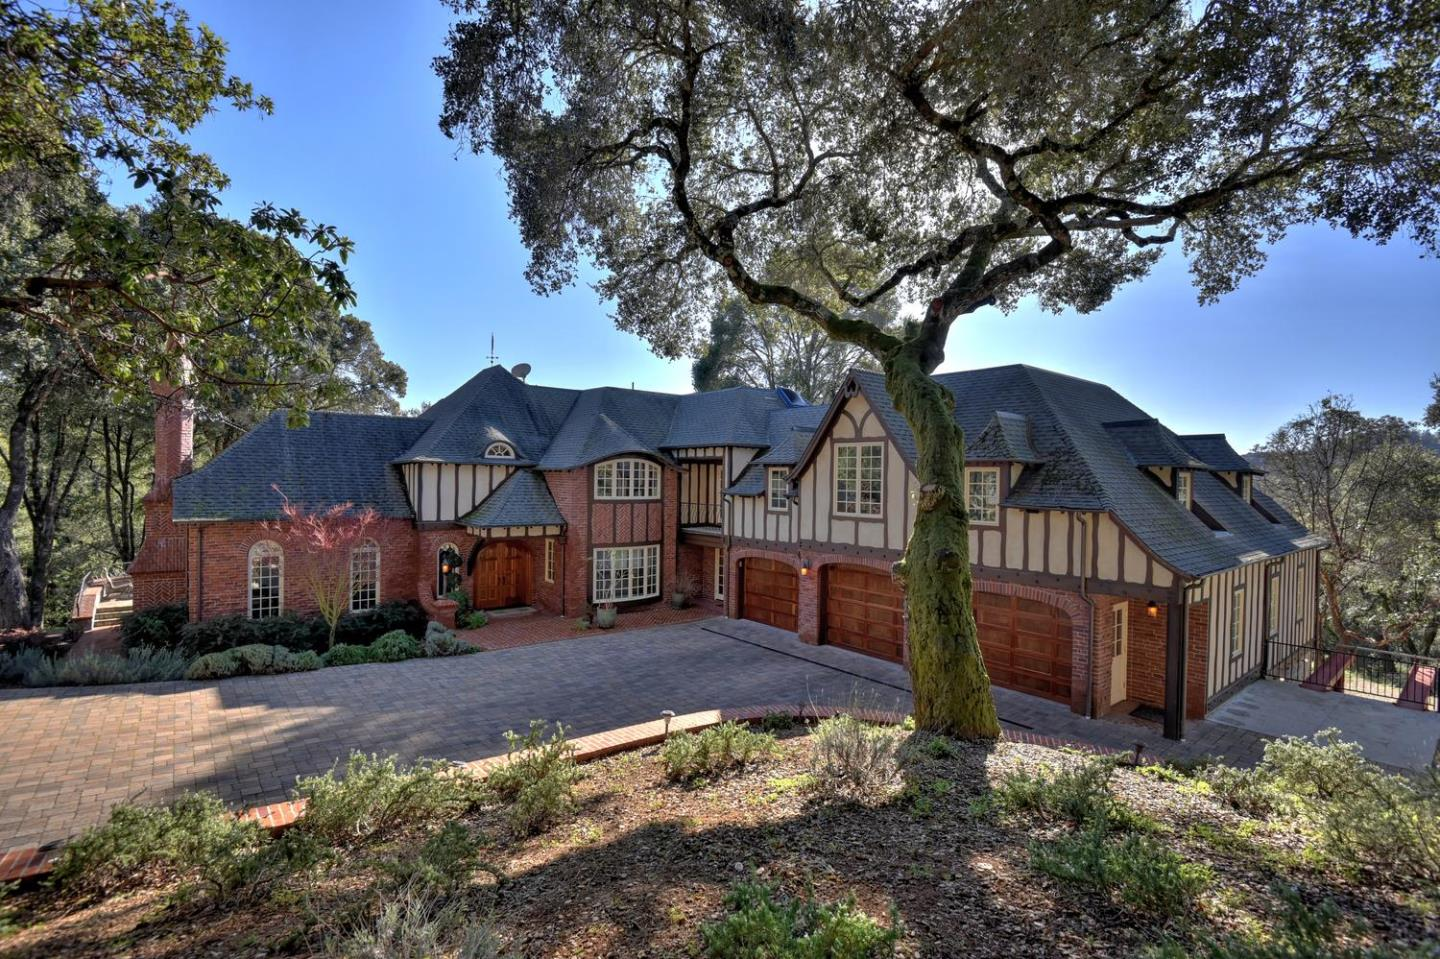 Maison unifamiliale pour l Vente à 5042 Wildberry Lane Soquel, Californie 95073 États-Unis